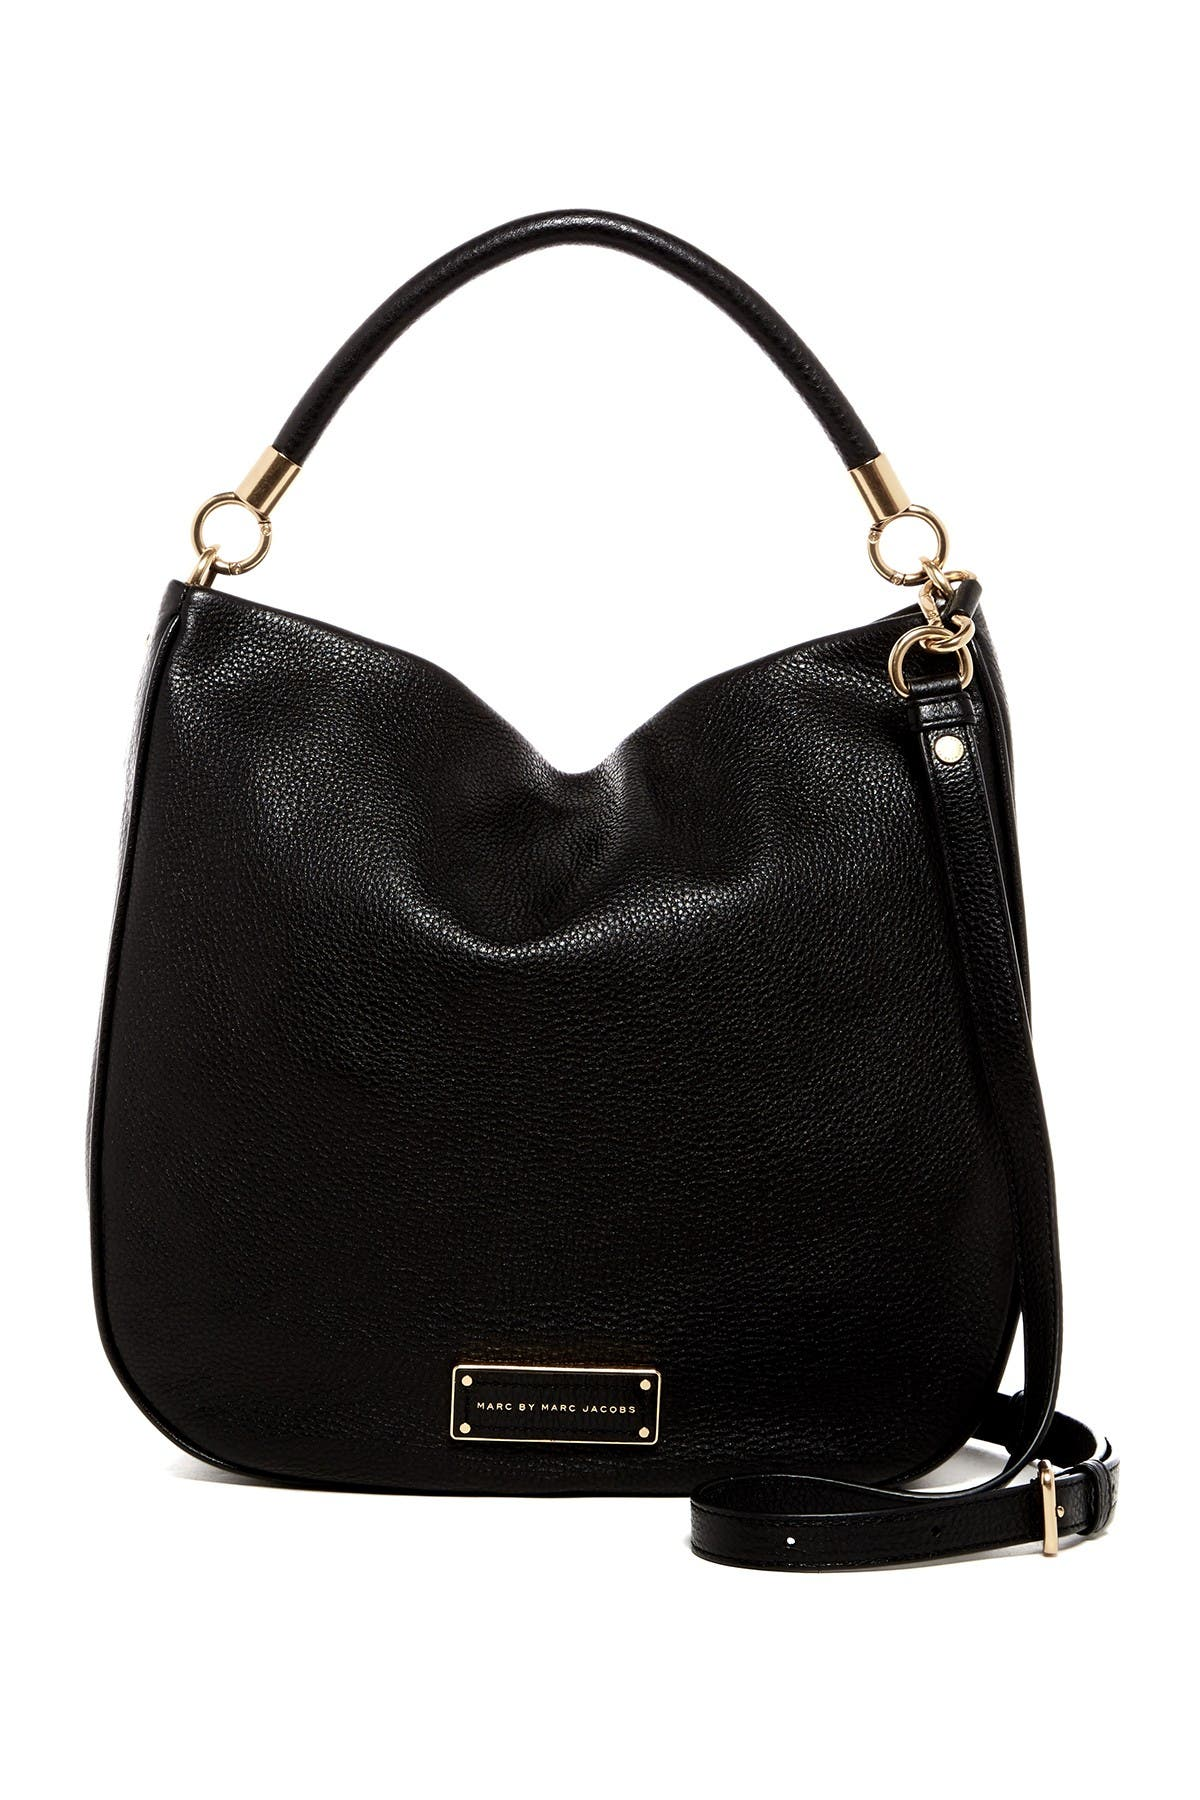 Image of Marc by Marc Jacobs Take Your Marc Leather Satchel